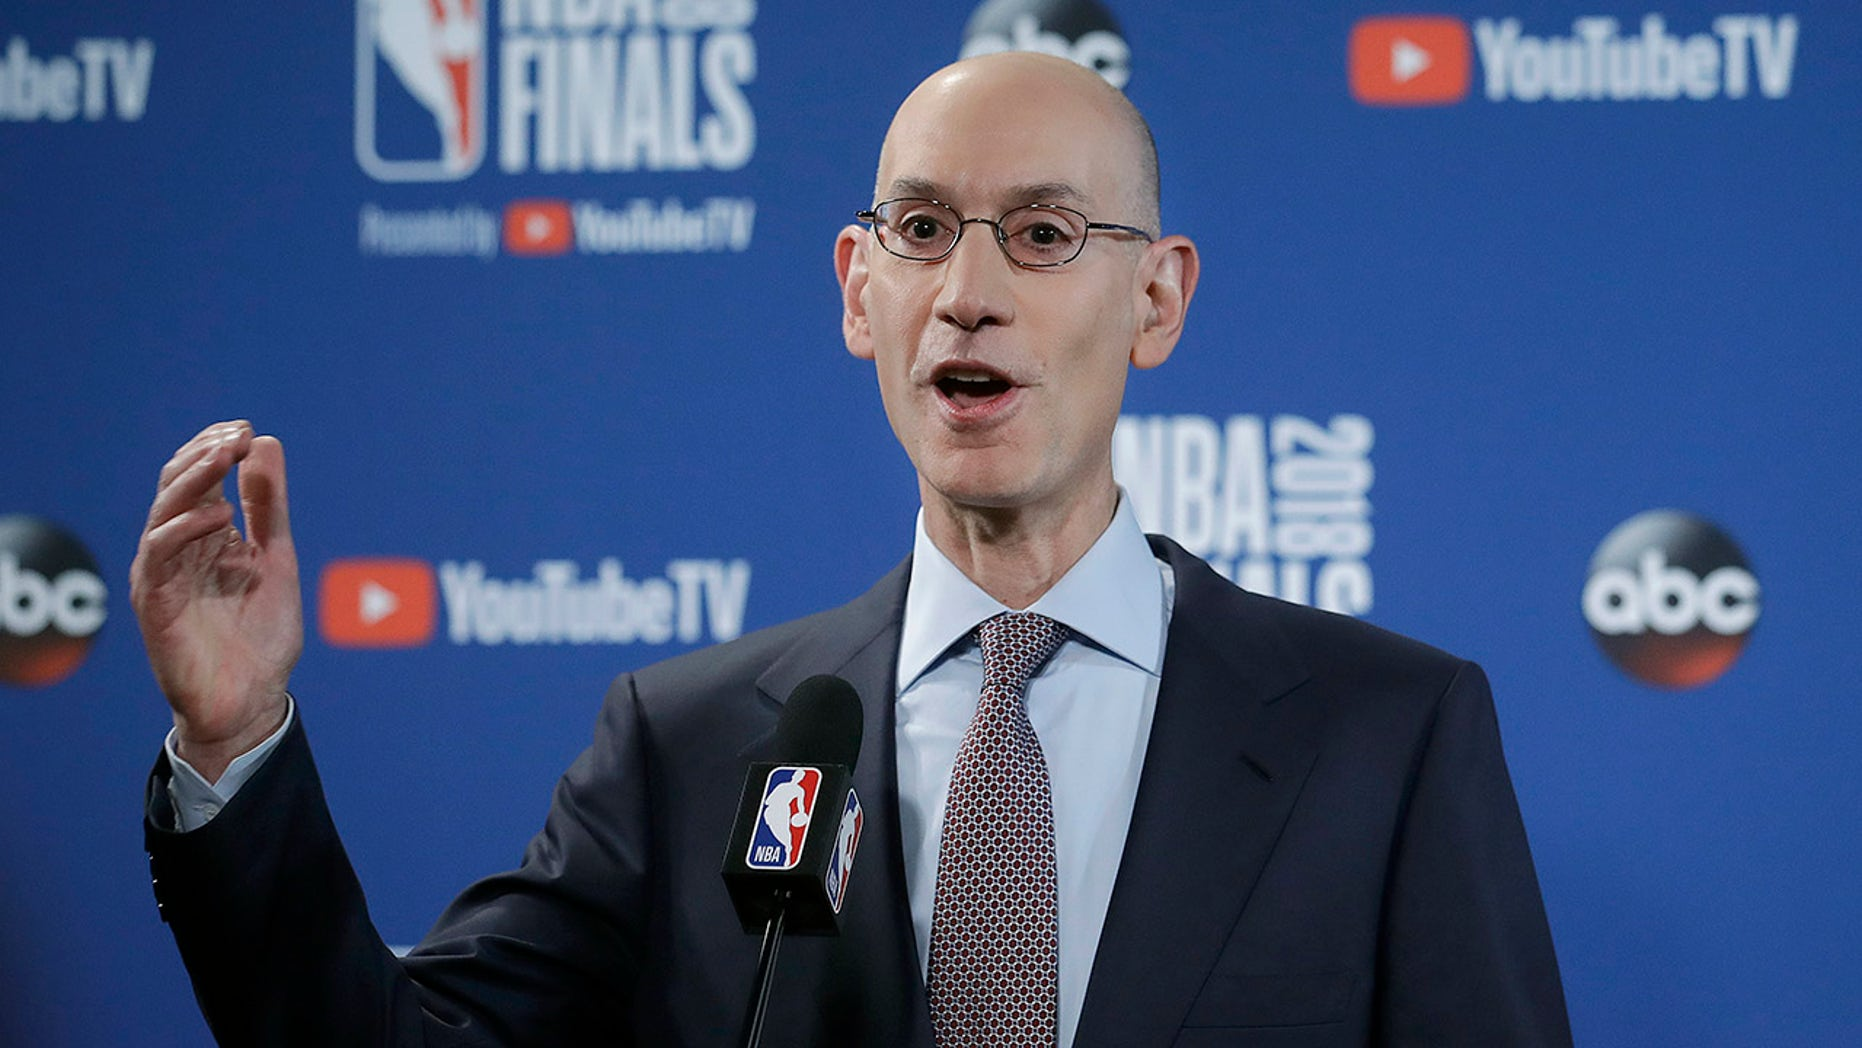 NBA commissioner Adam Silver addressed the league's national anthem policy.